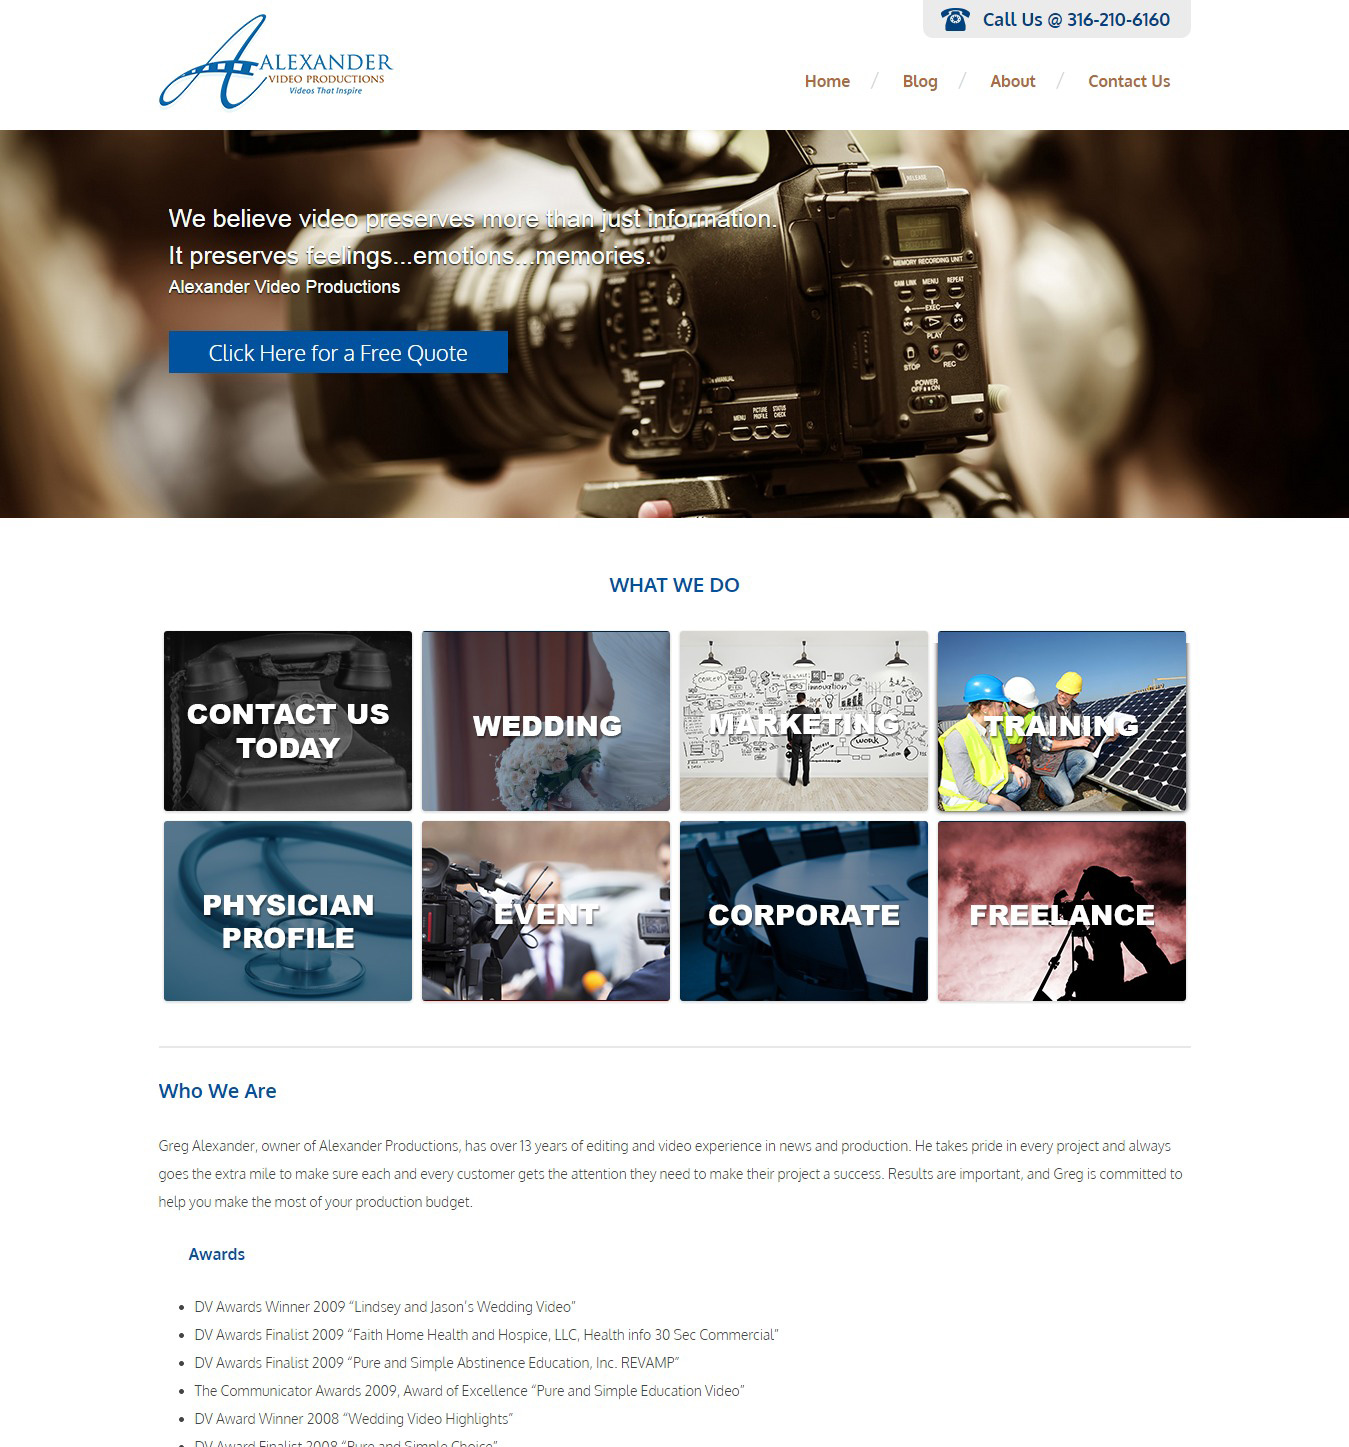 Alexander Video Productions